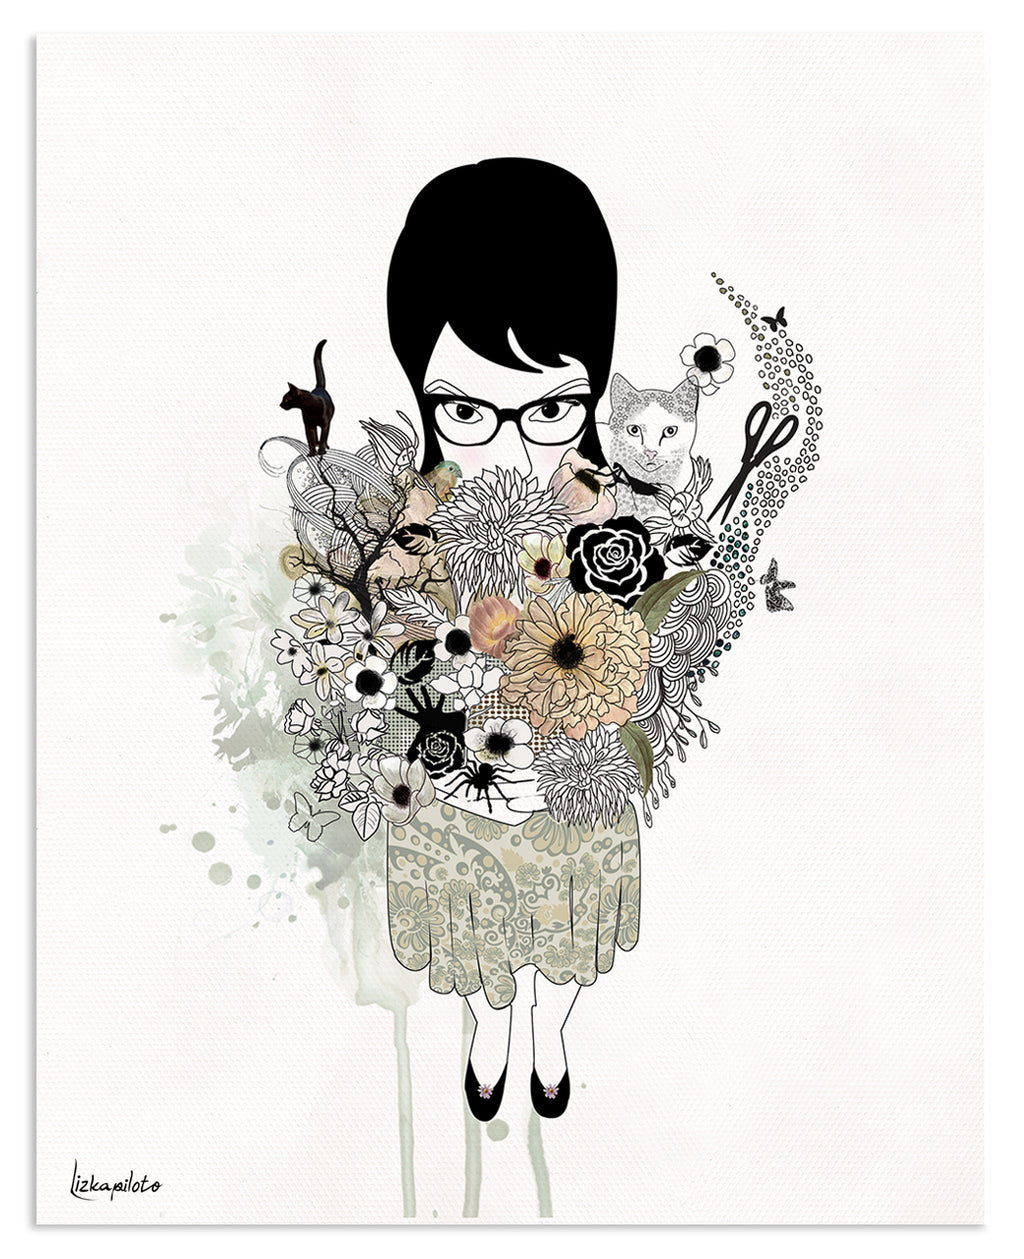 Gothic girl illustration of a girl holding a flower bouquet  - Liz Kapiloto Art & Design